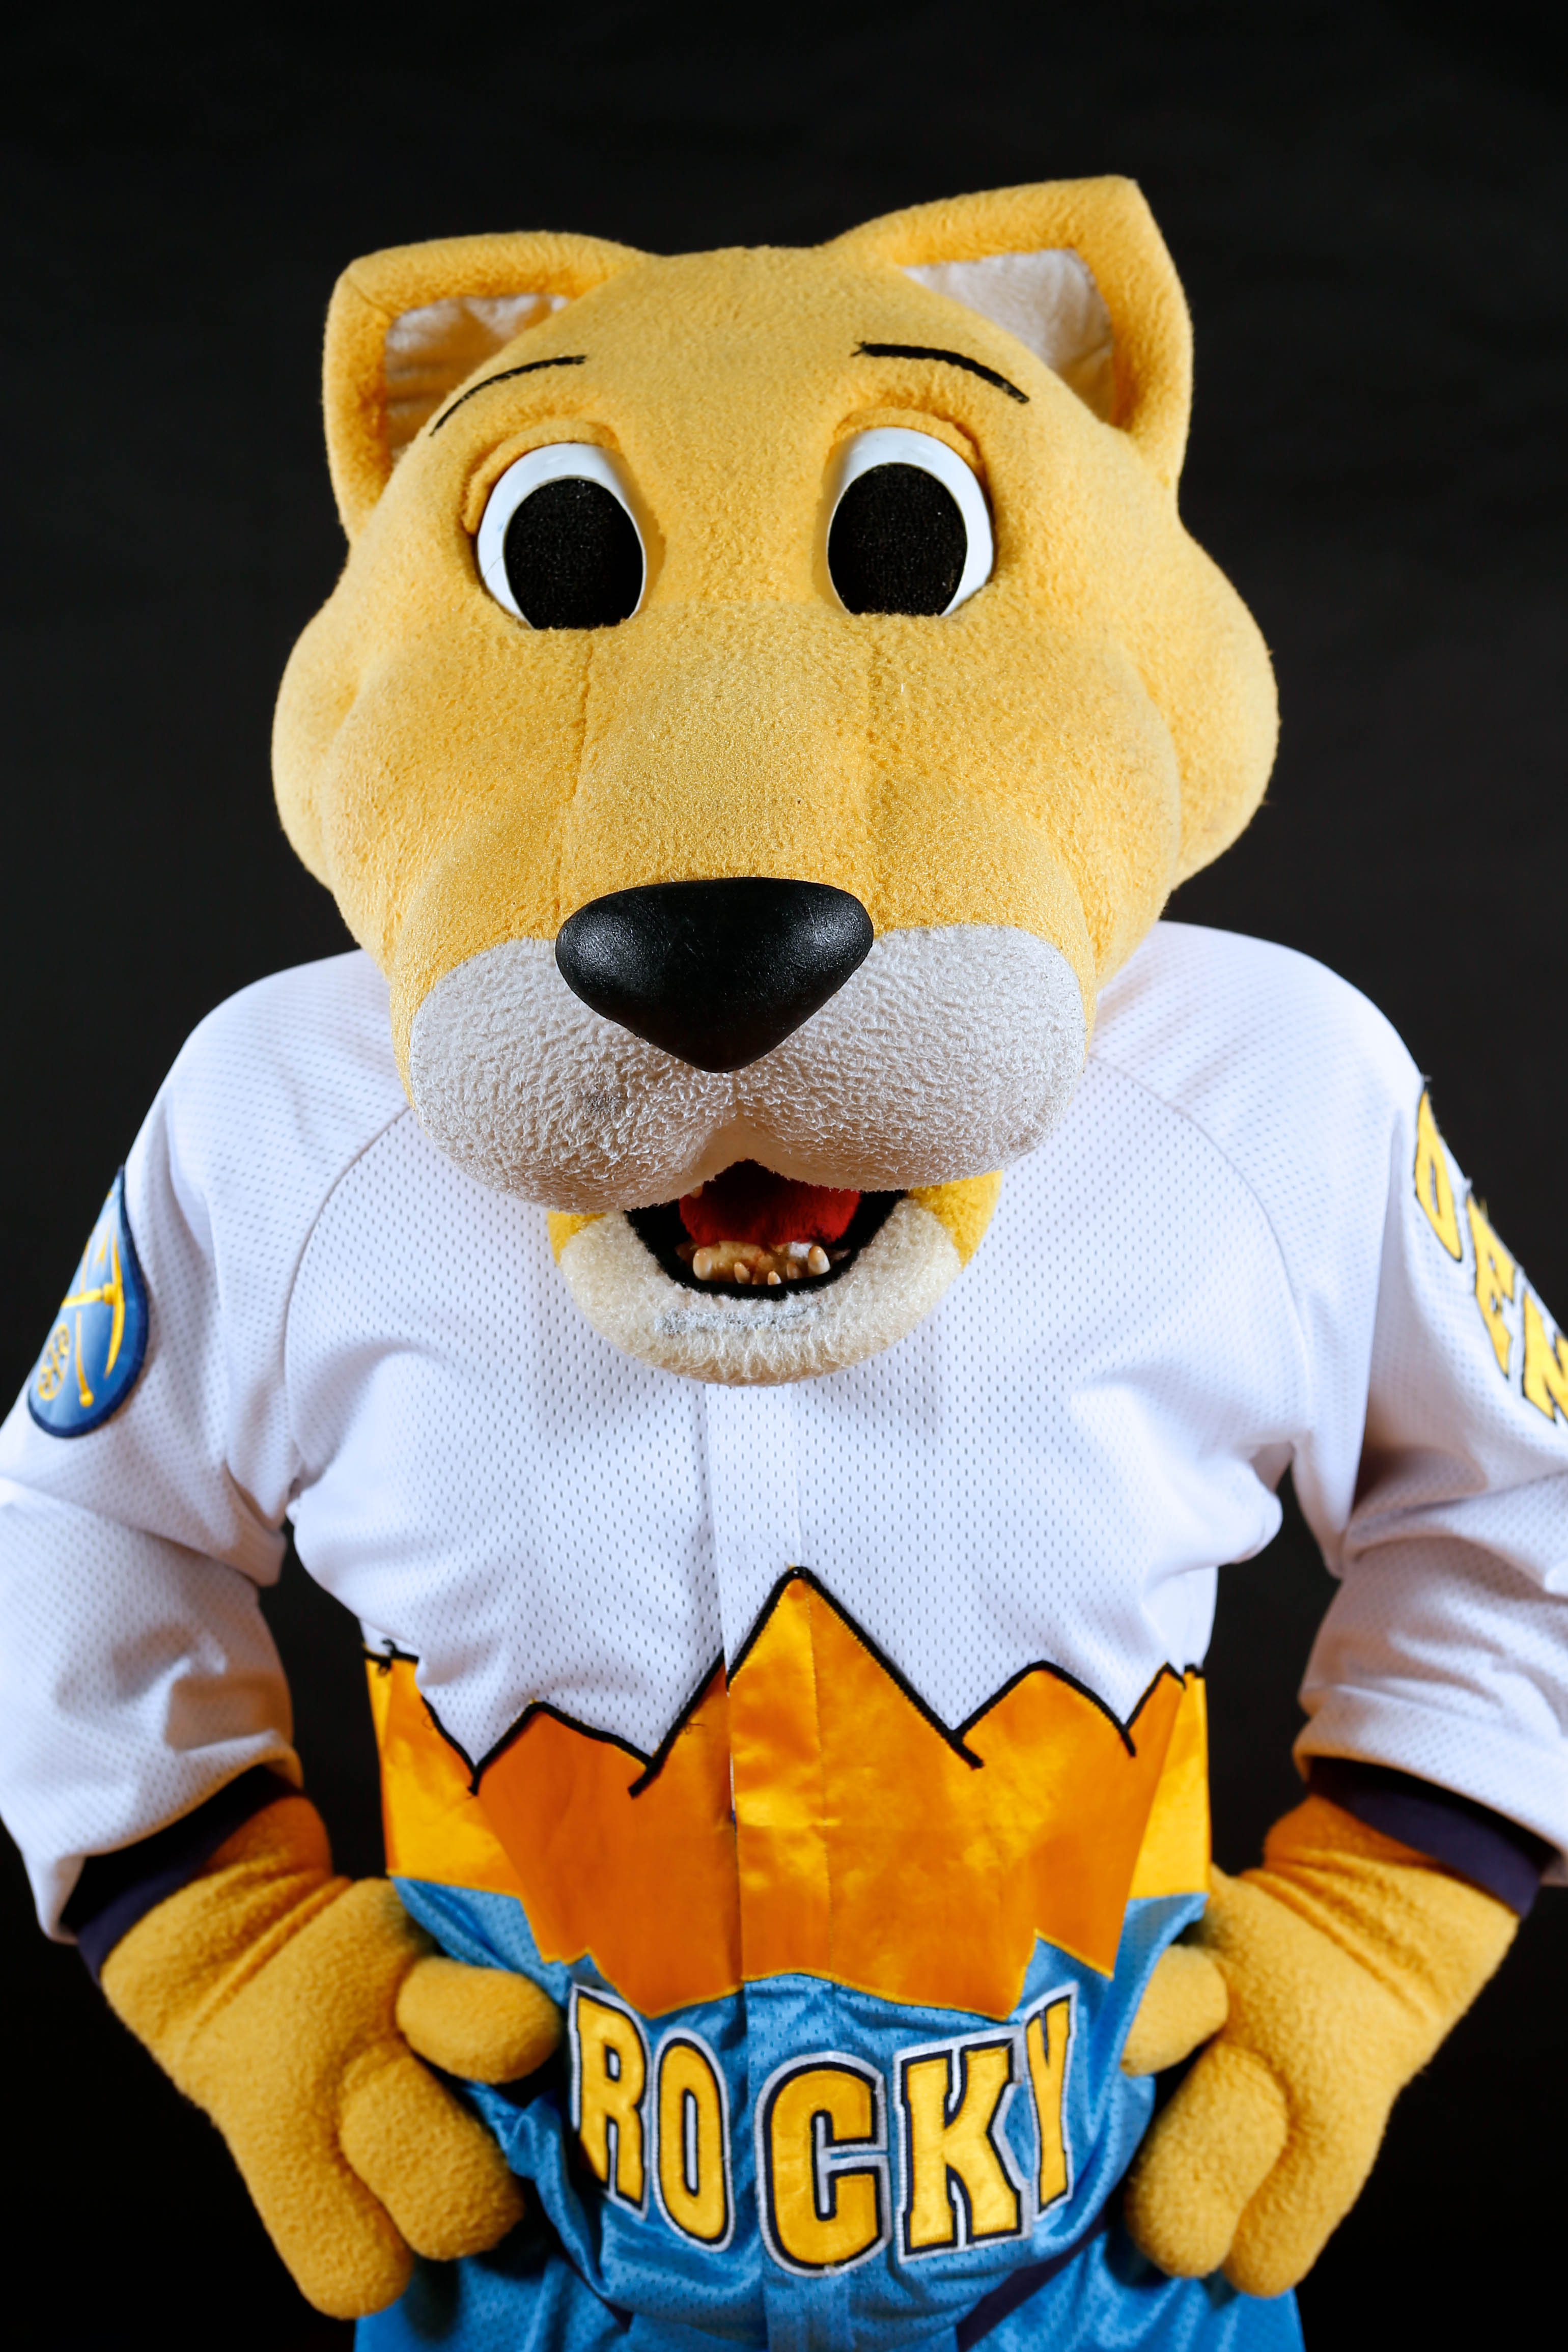 Sep 29, 2014; Denver, CO, USA; Denver Nuggets mascot Rocky poses for a portrait during media day at the Pepsi Center. (Isaiah J. Downing-USA TODAY Sports)